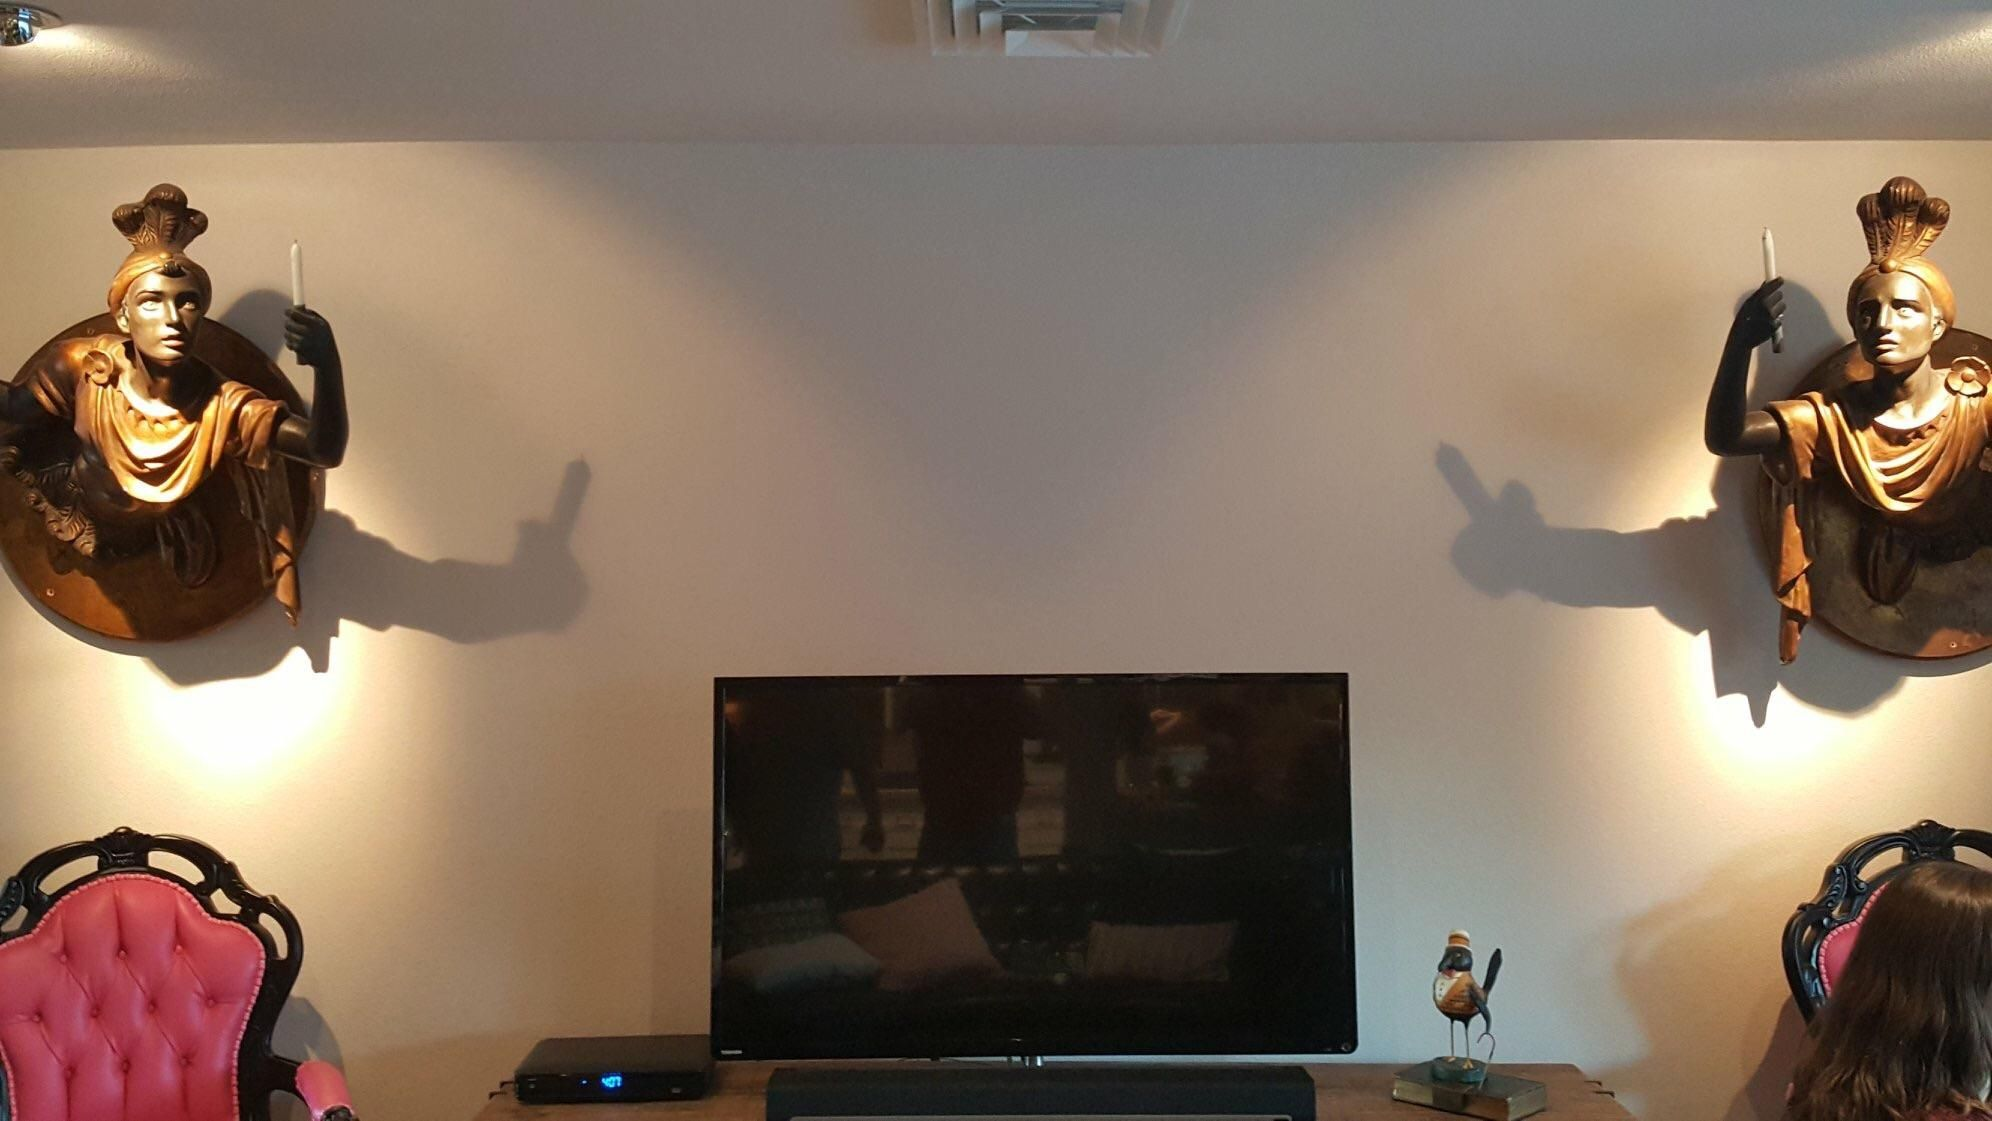 Unforeseen shadow puppetry